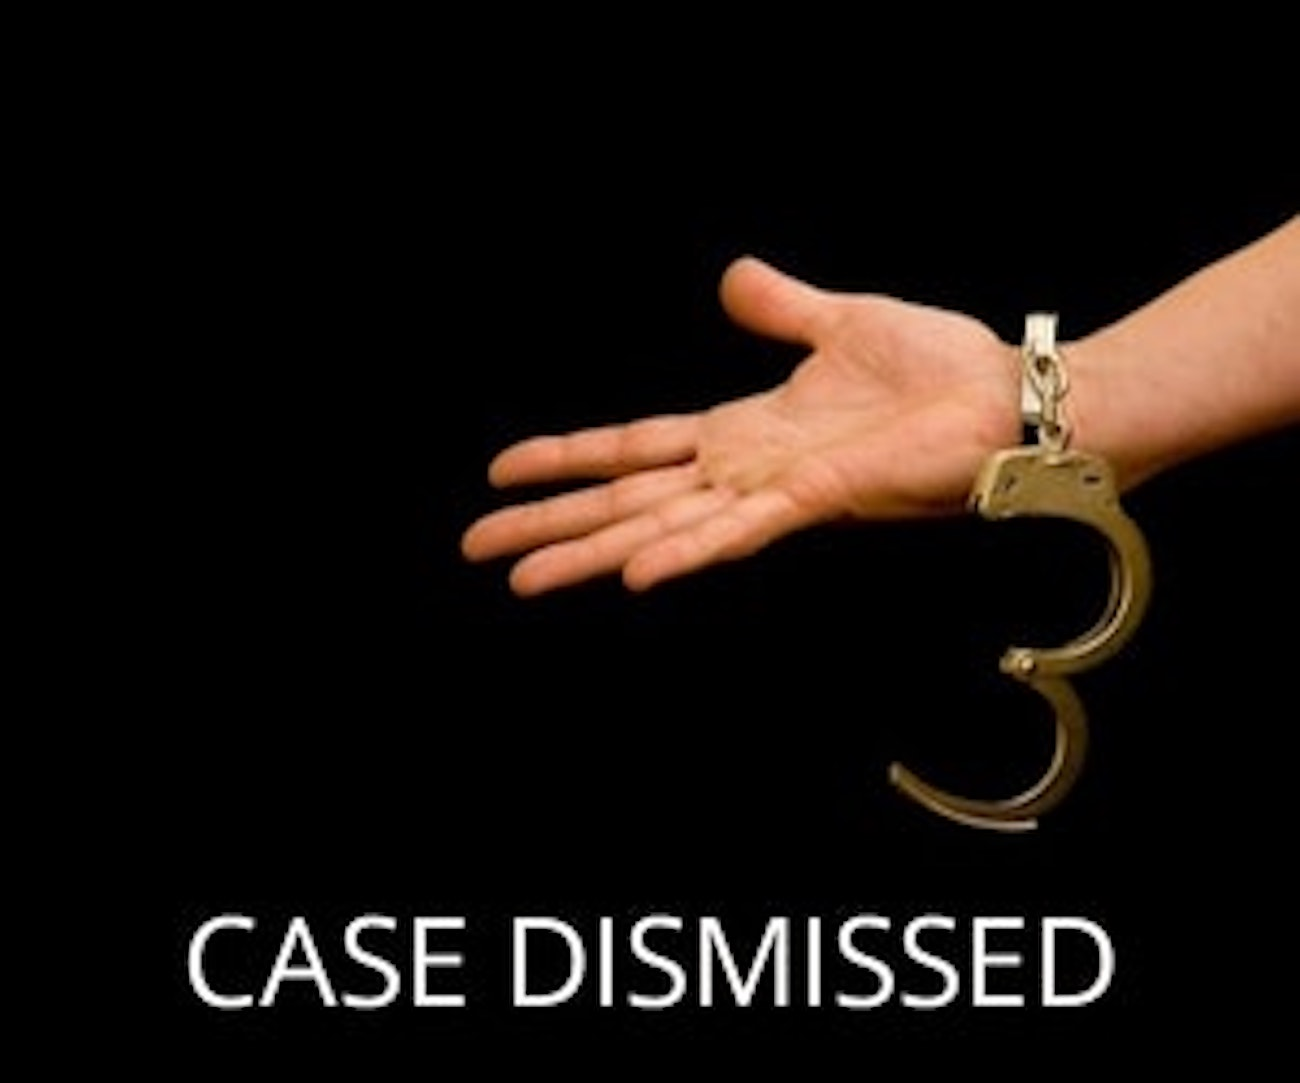 How to Get a Possession Charge Dismissed